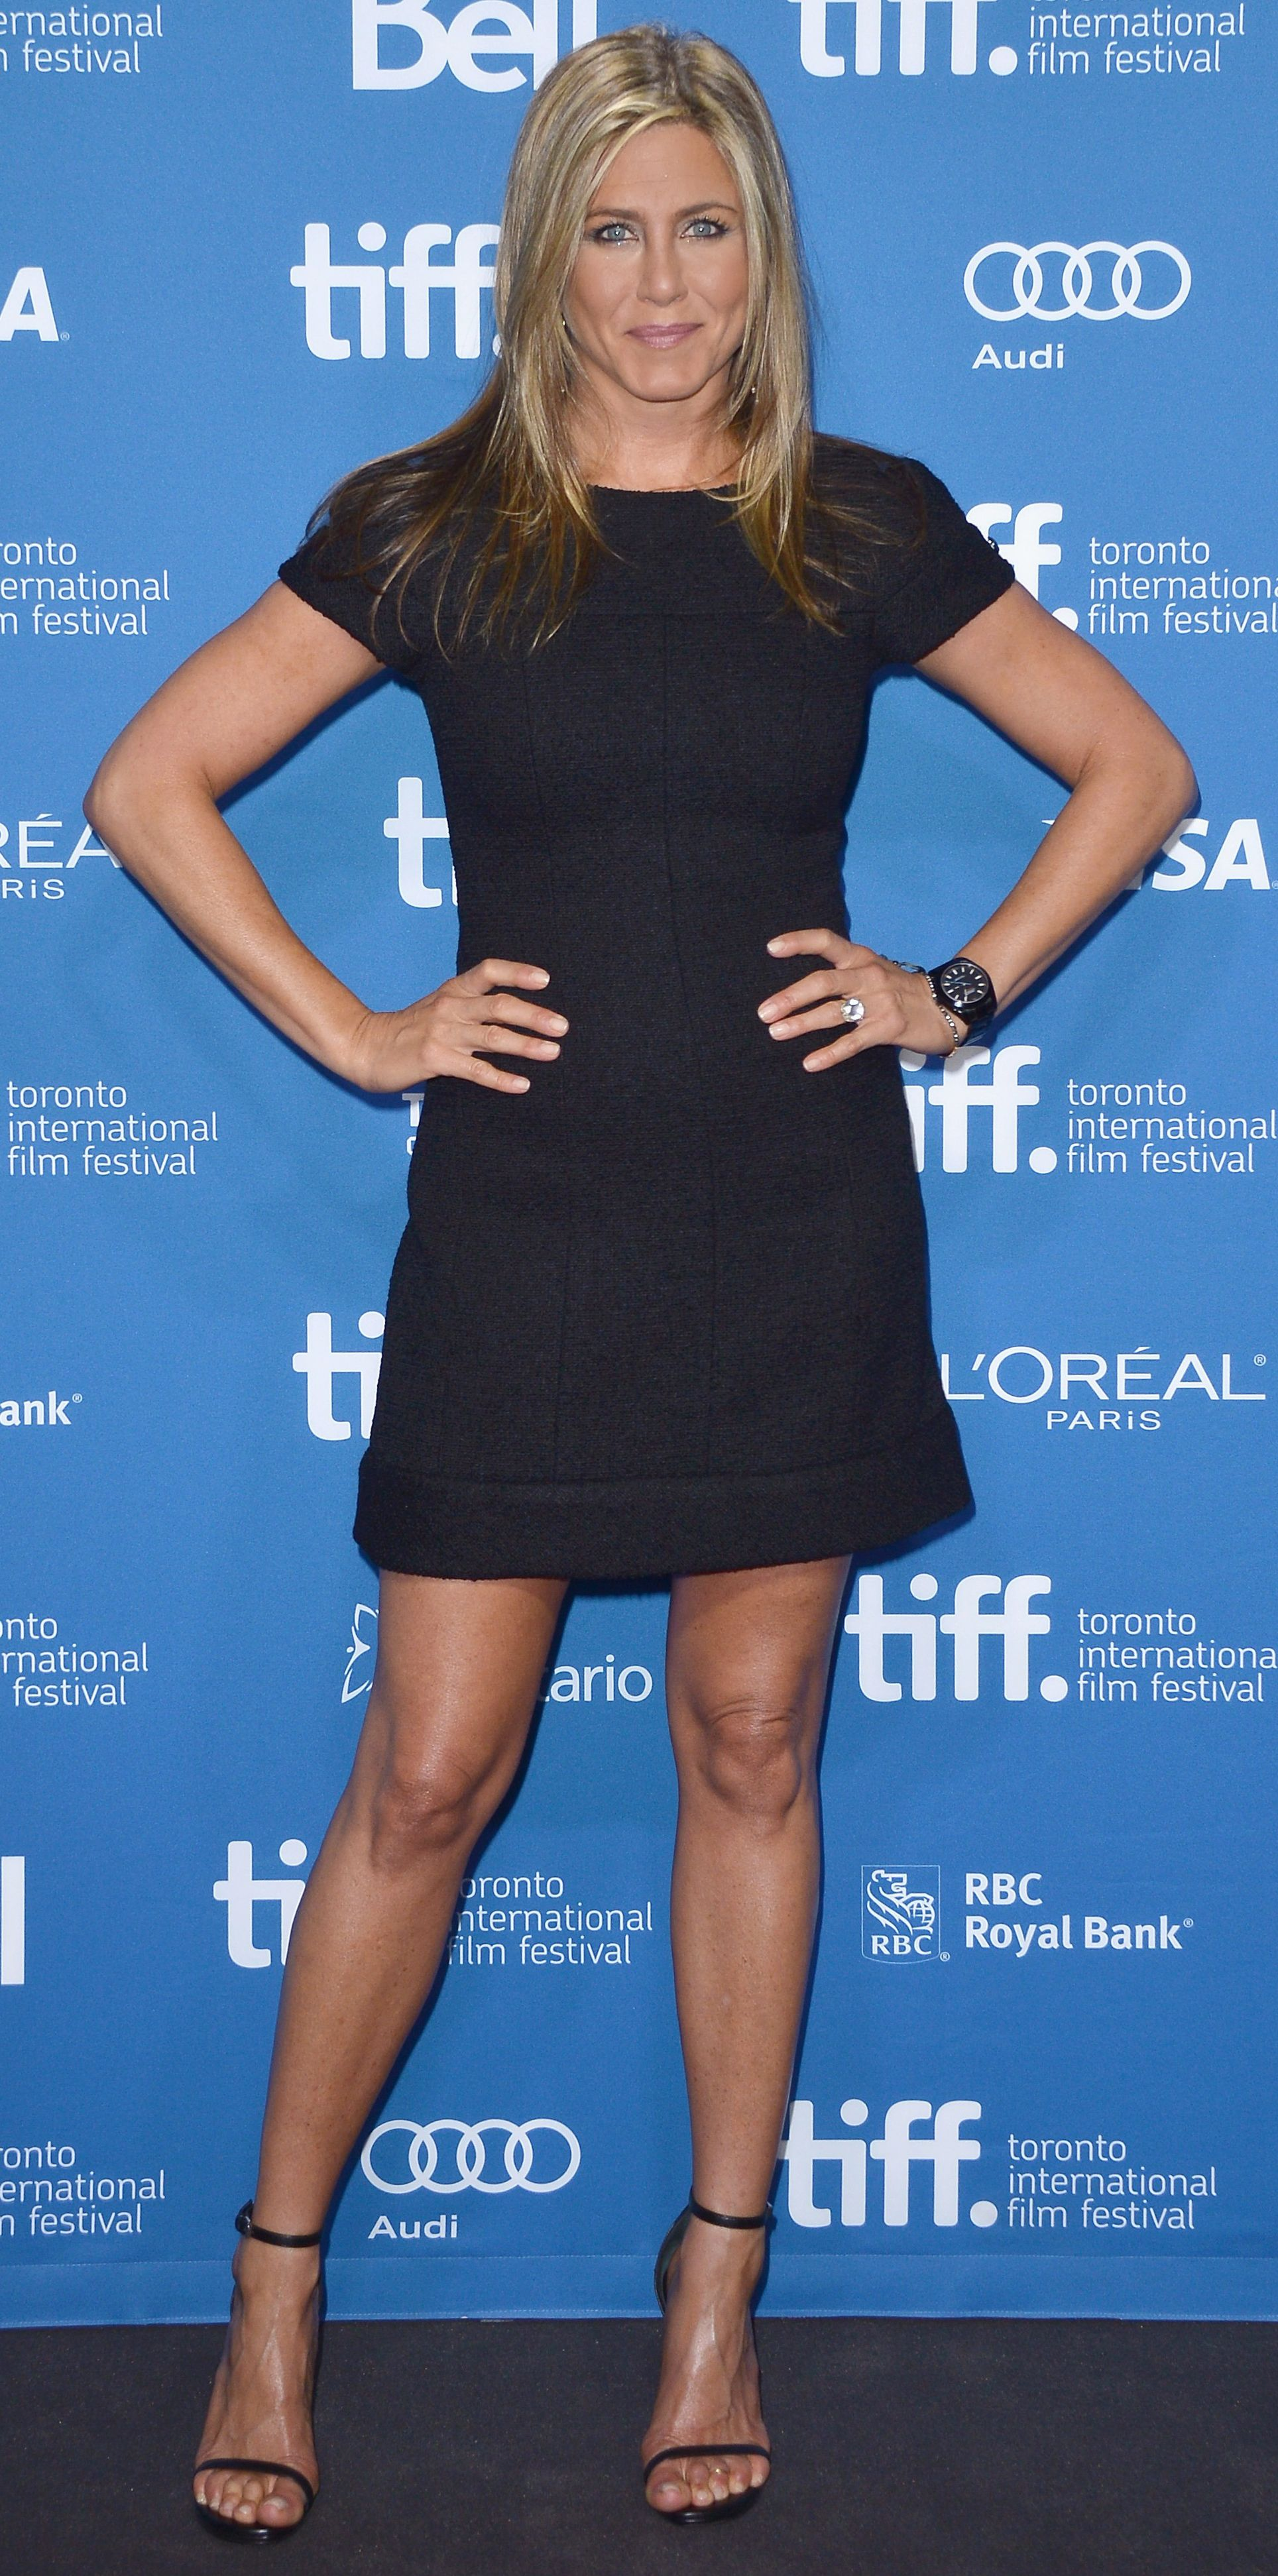 Jennifer Aniston's Red Carpet Style - In Chanel, 2013  - from InStyle.com